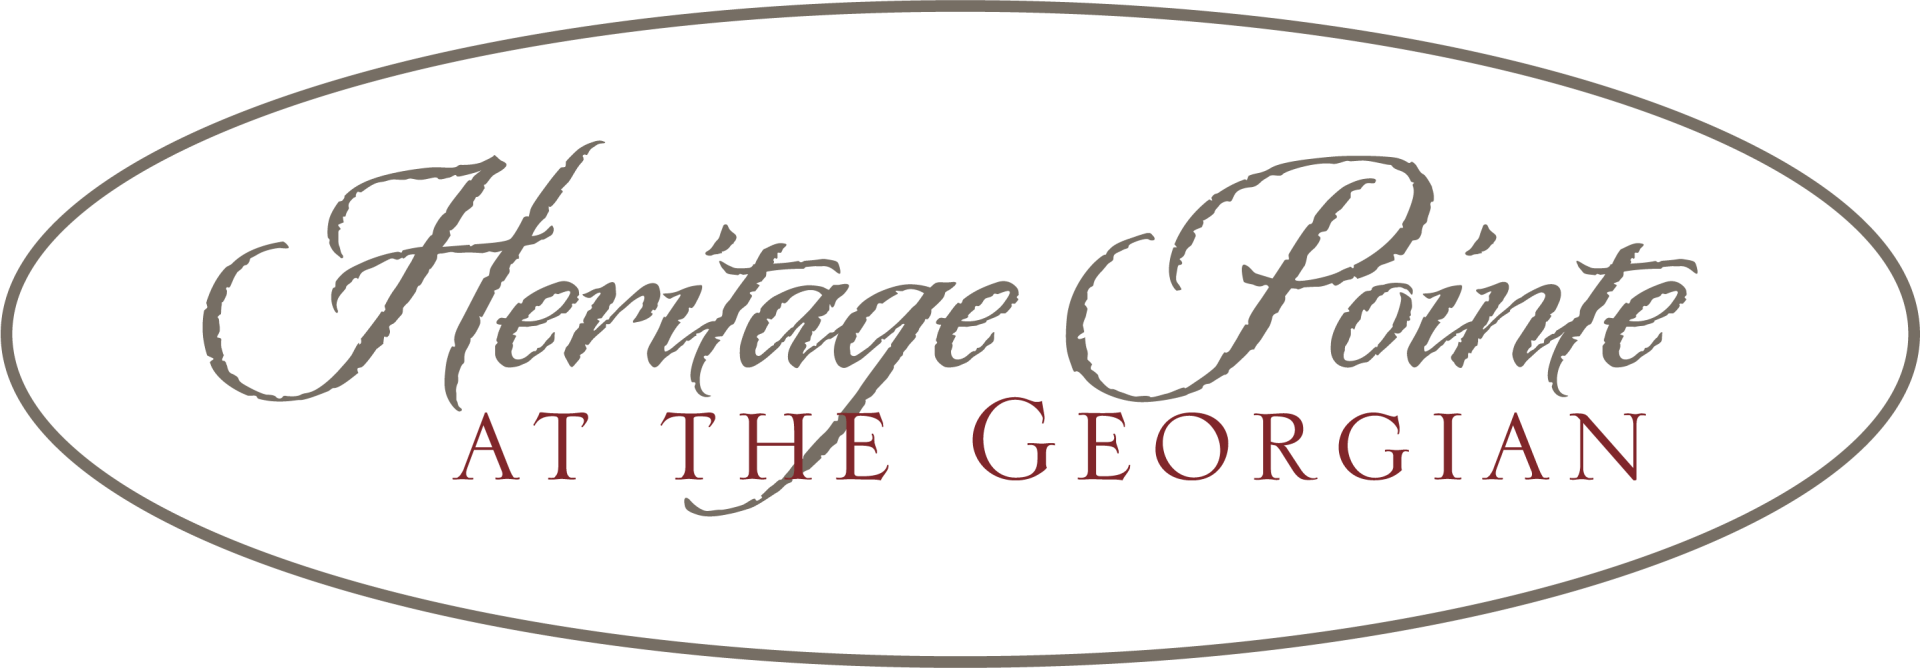 the logo for Heritage Pointe at The Georgian